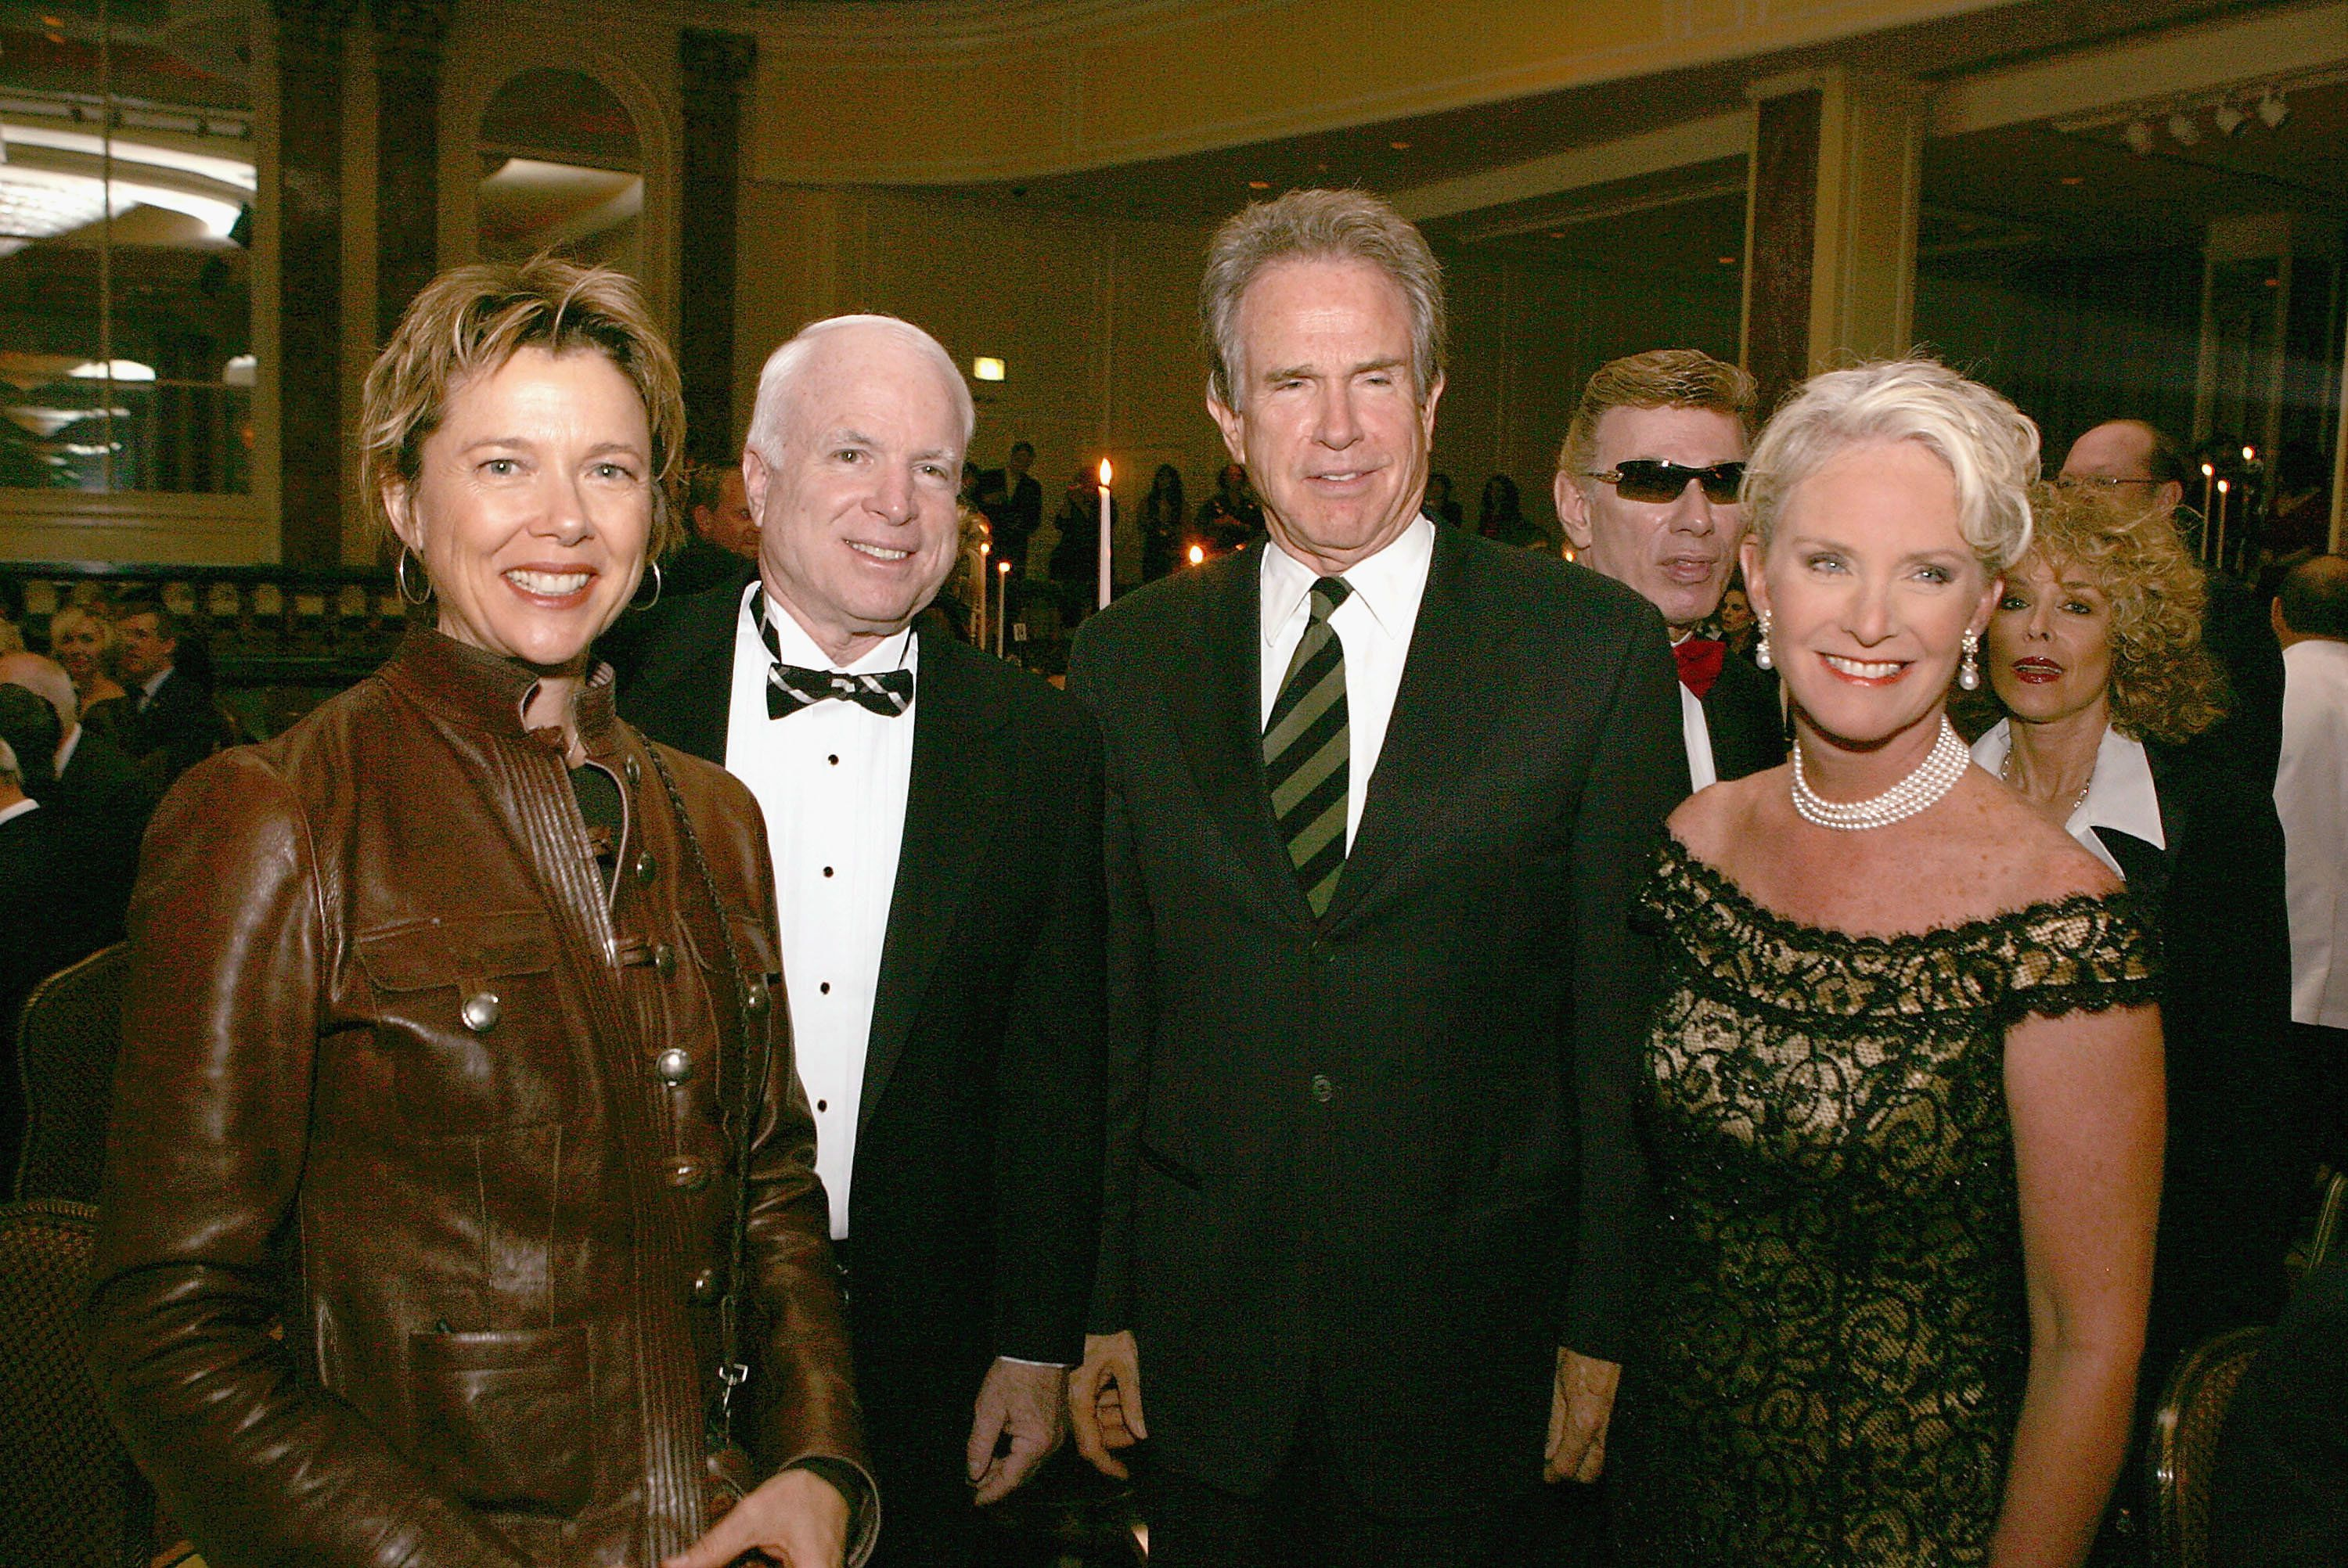 Warren Beatty (second from right) and his wife, Annette Bening (left), joined John McCain (second from left) and his wife, Ci